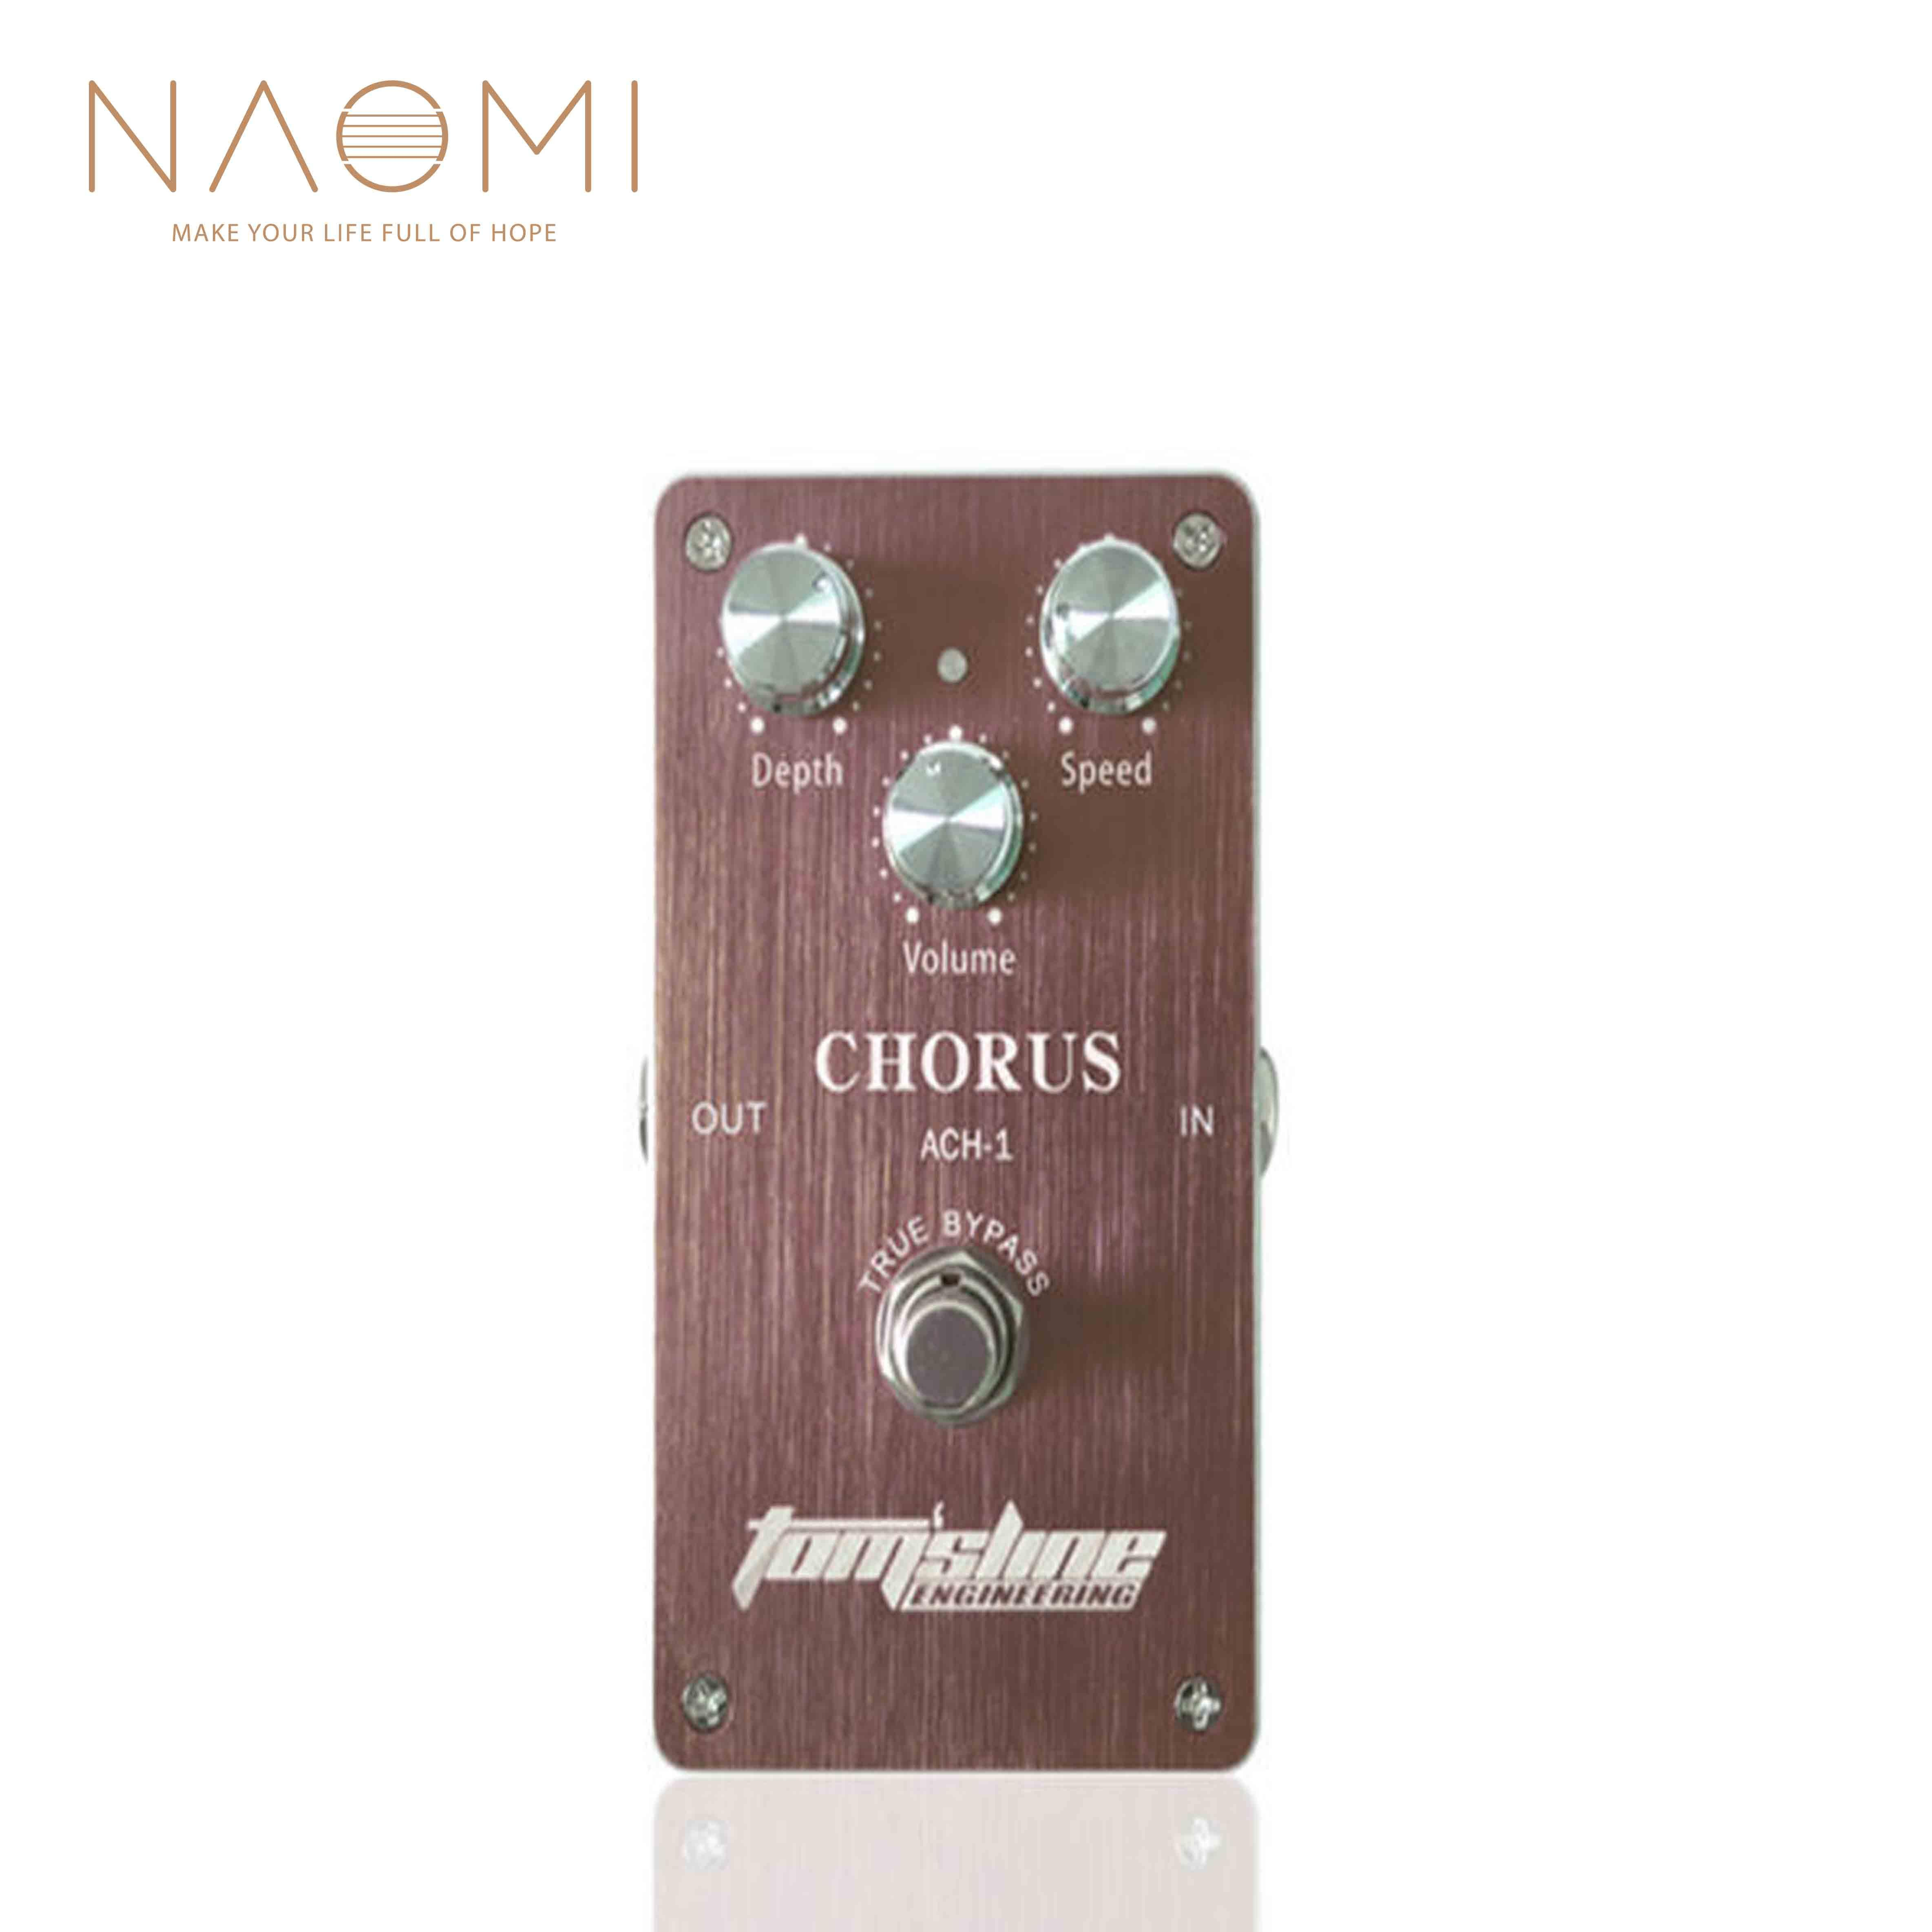 tomsline engineering  NAOMI Aroma New TOM'SLINE Engineering Pedal Guitar Effect Pedal ACH-1  Chorus True Bypass